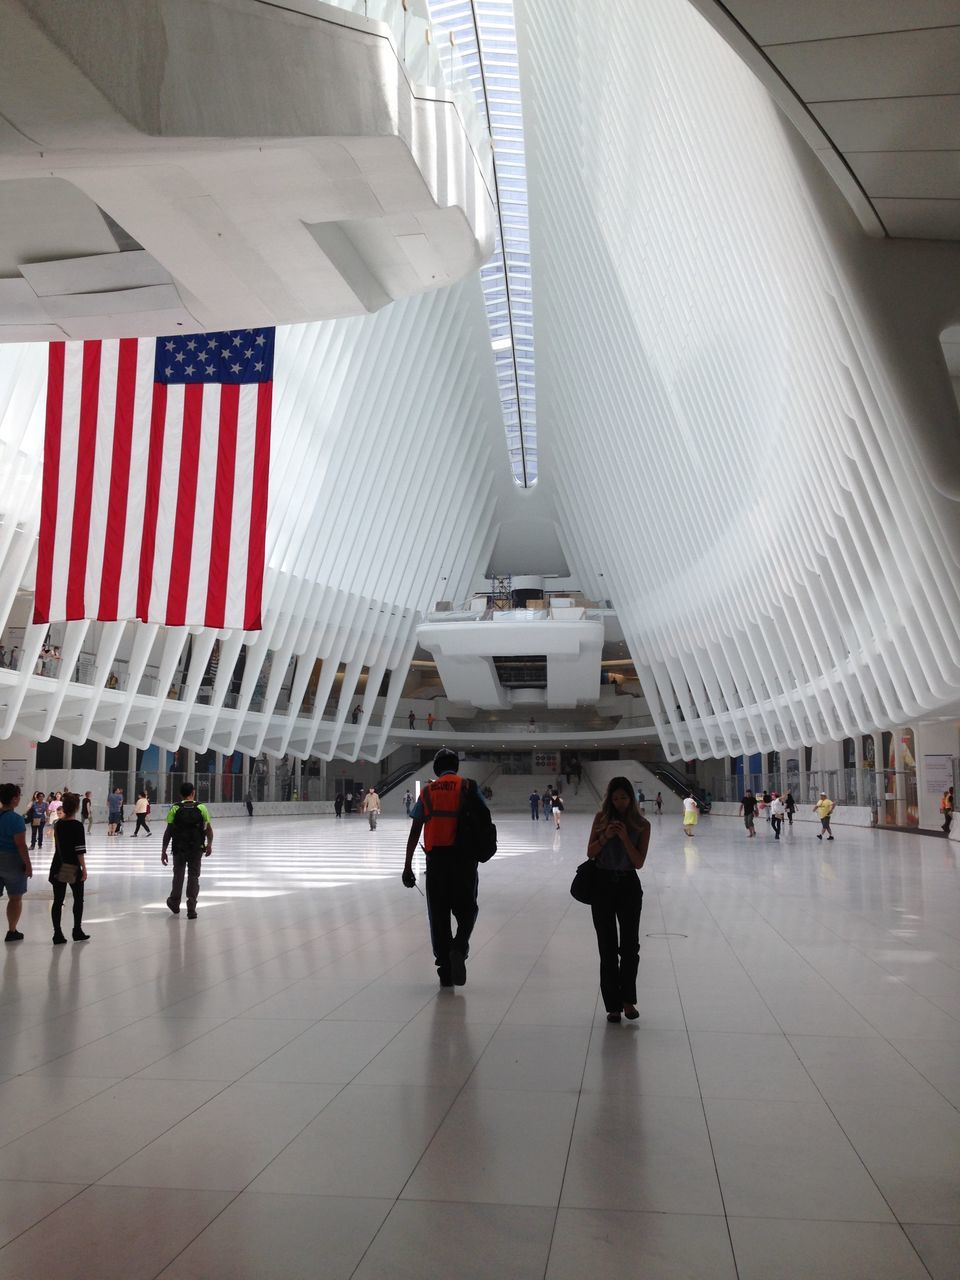 flag, patriotism, real people, large group of people, architecture, indoors, built structure, men, day, architectural column, women, people